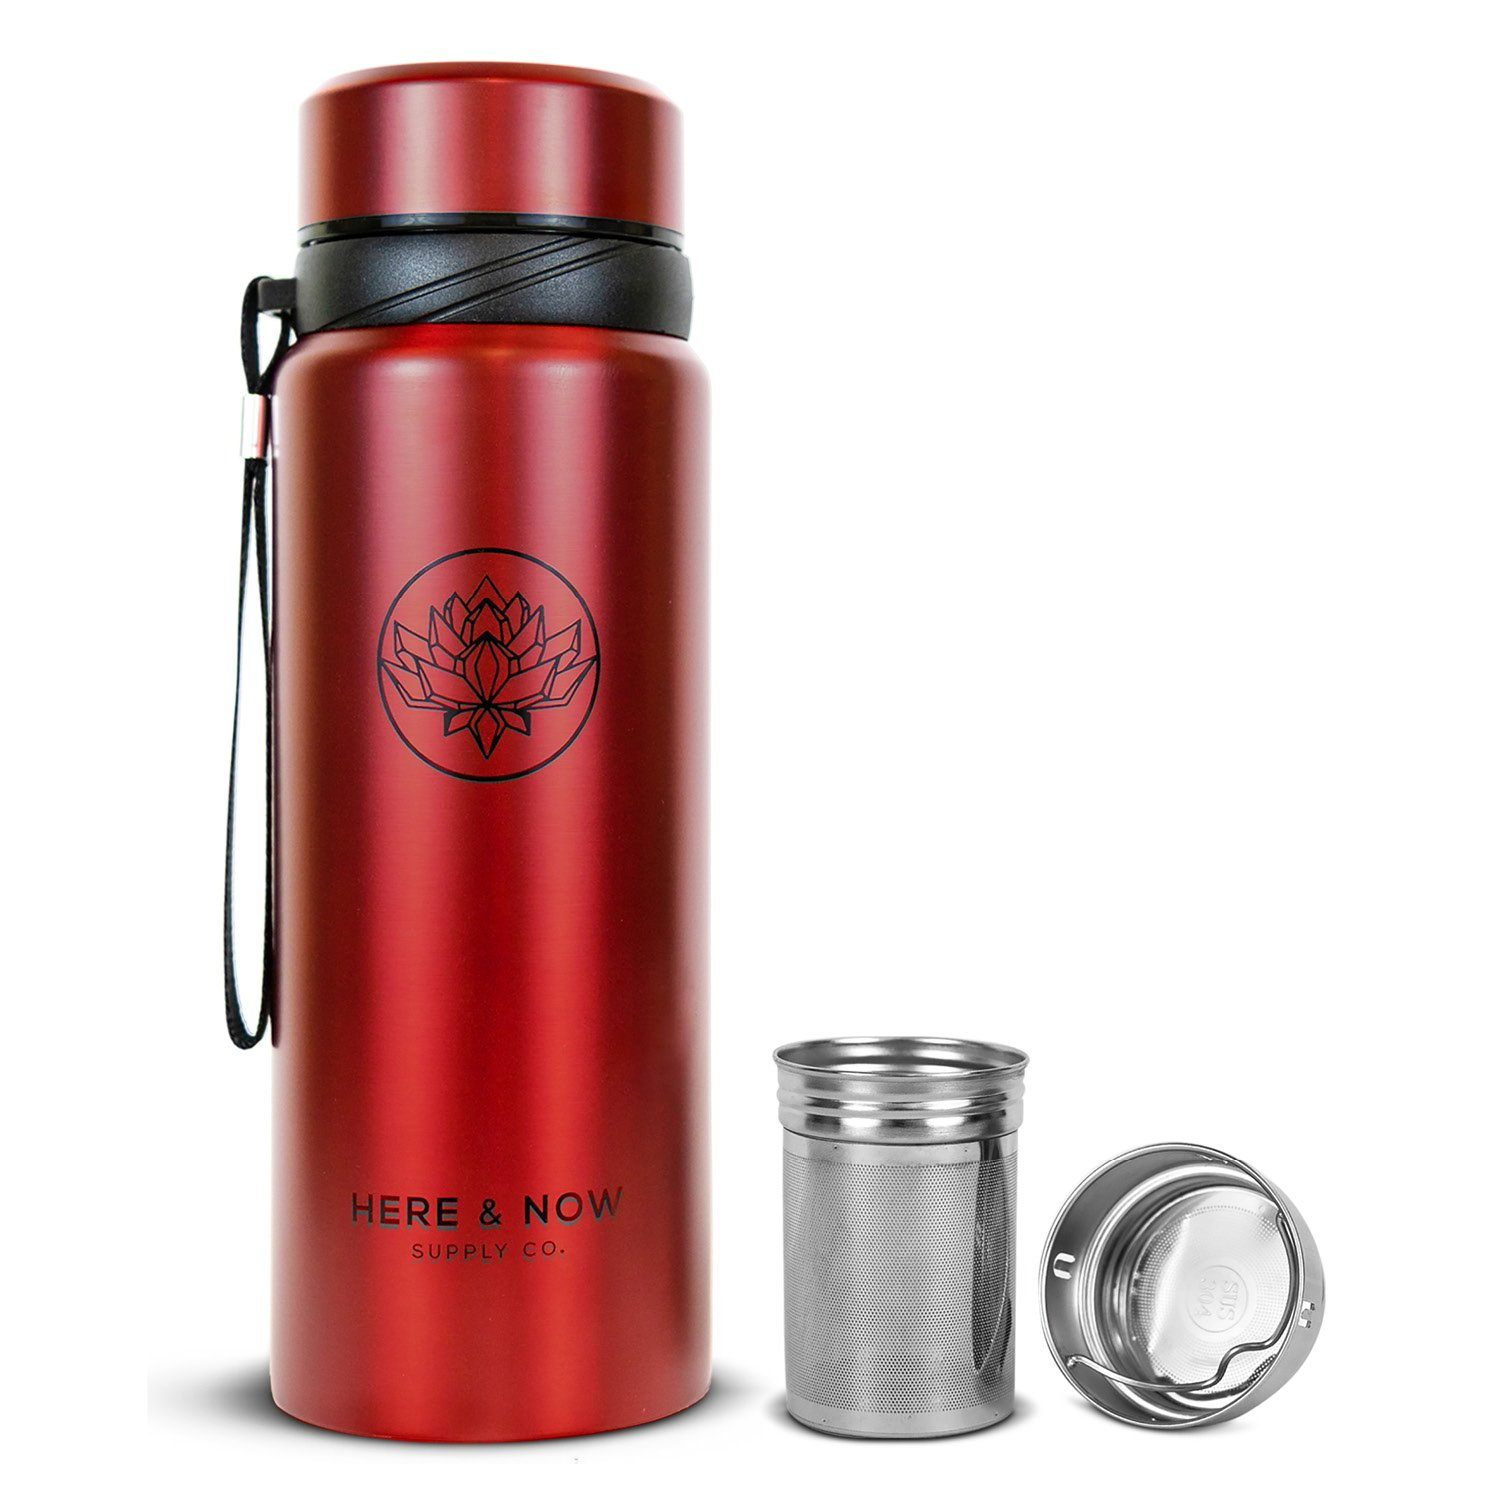 Nova - 25 oz Infuser Bottle Infuser Bottle Here & Now Supply Co. Nova Red #color_nova-red